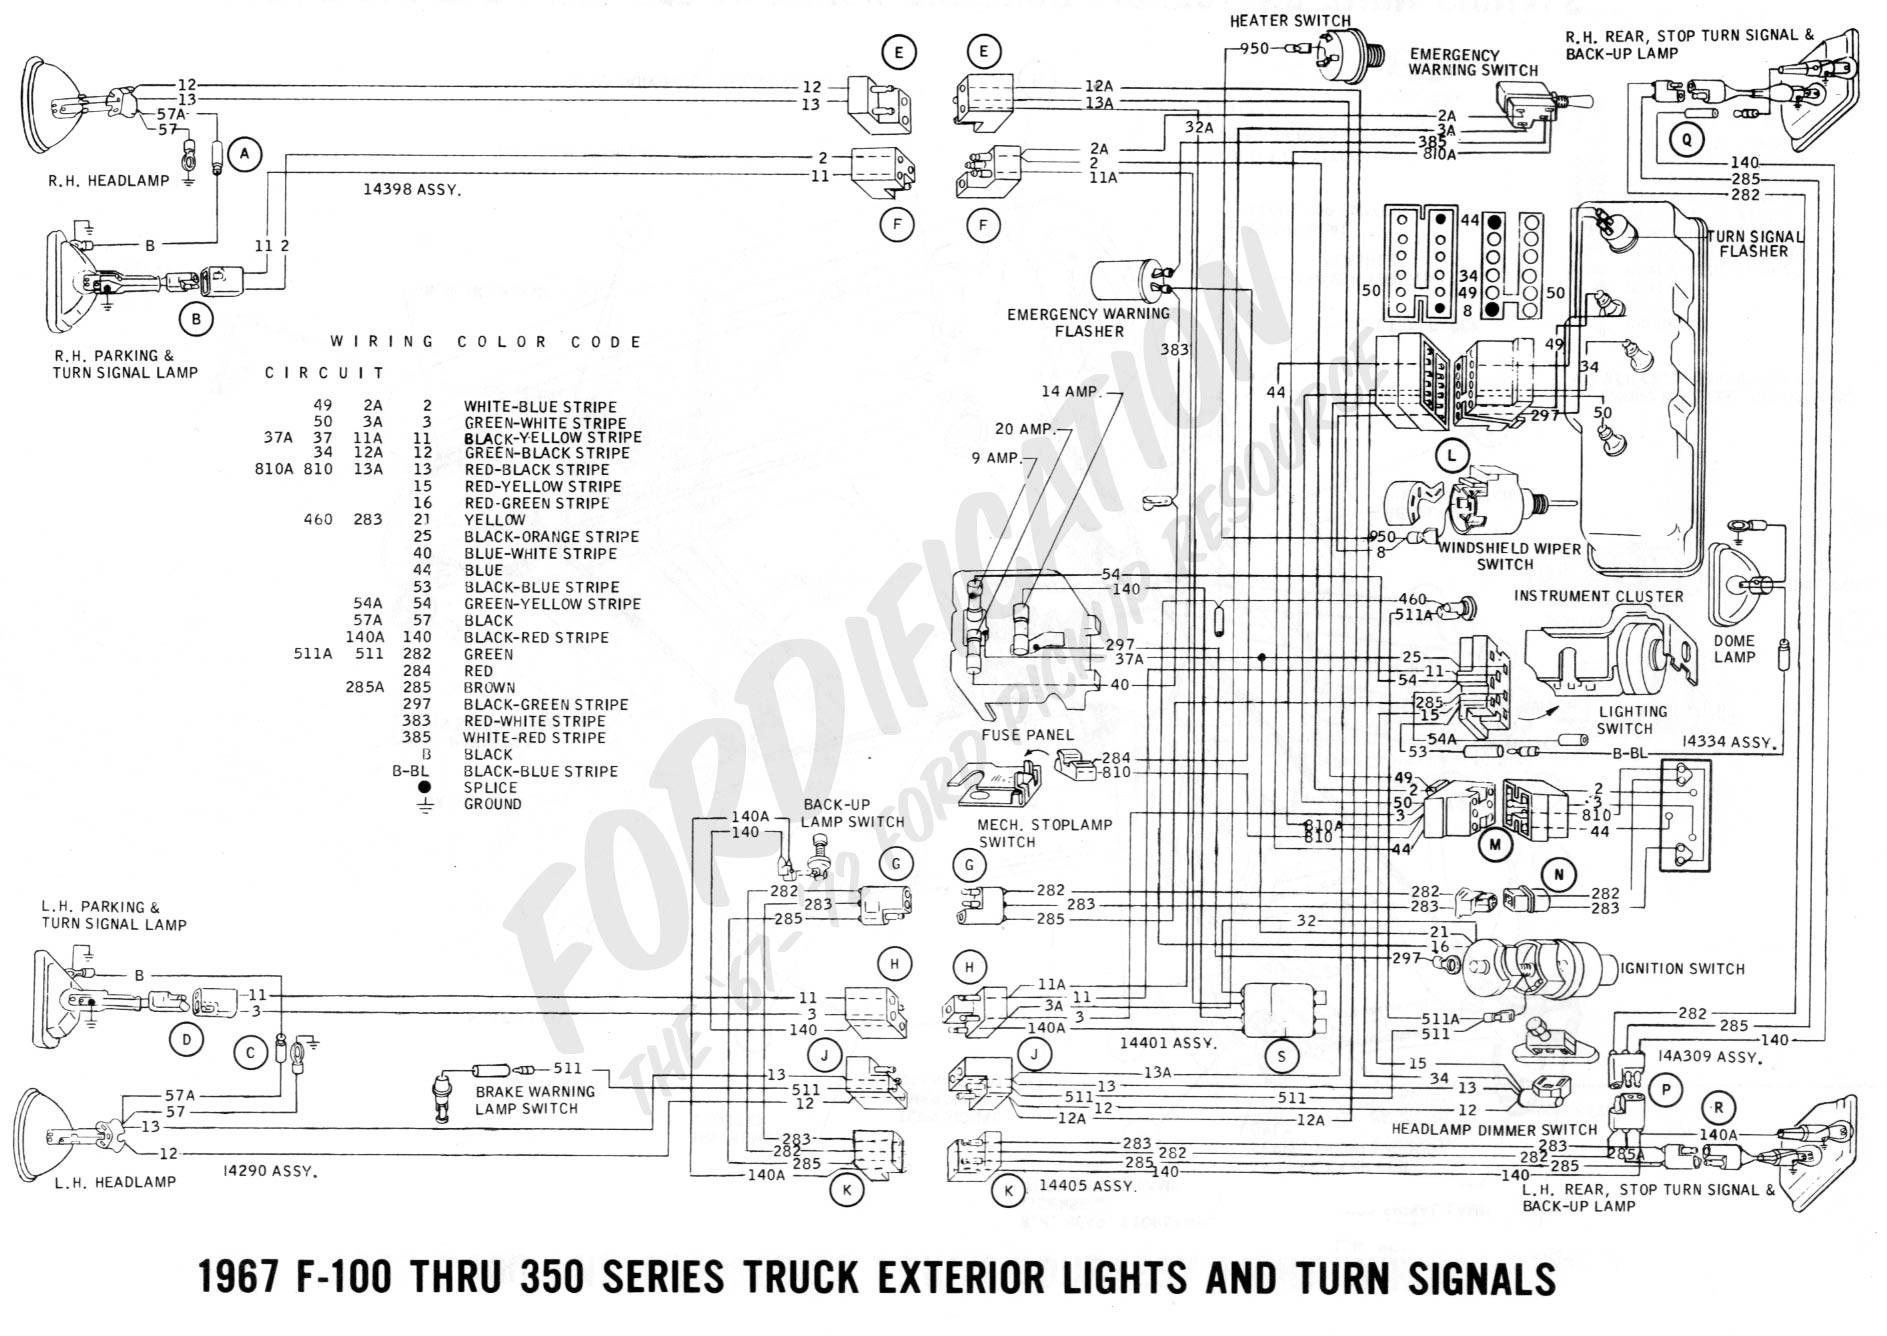 1989 ford thunderbird wiring diagram wiring diagram rh w32 vom winnenthal de 1989 ford thunderbird radio wiring diagram